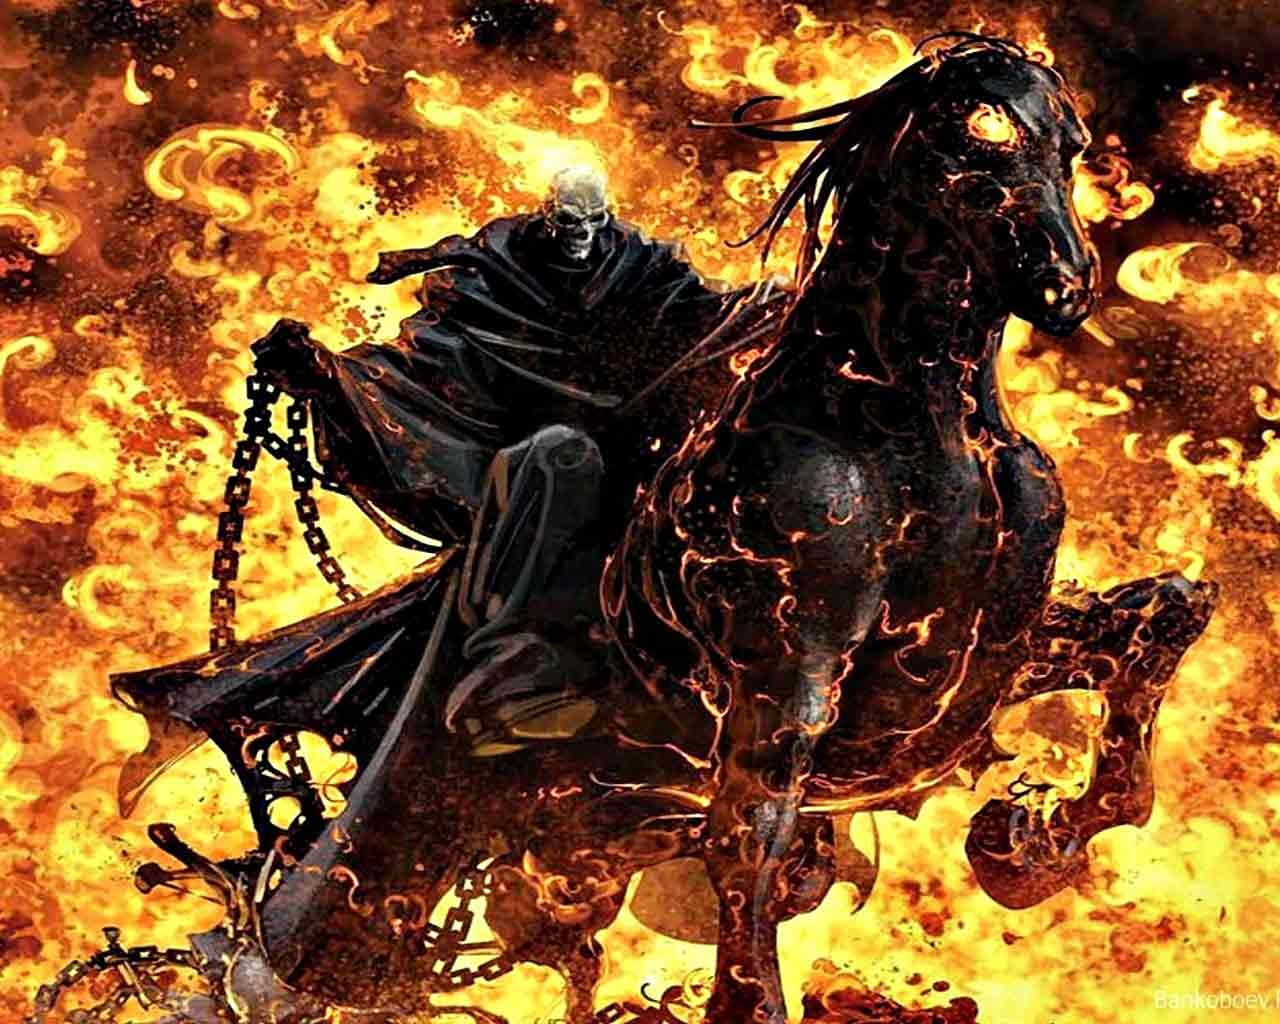 Collection of Ghost Rider Wallpaper Free Download on HDWallpapers 1024×768 Ghost Rider 2 Wallpapers